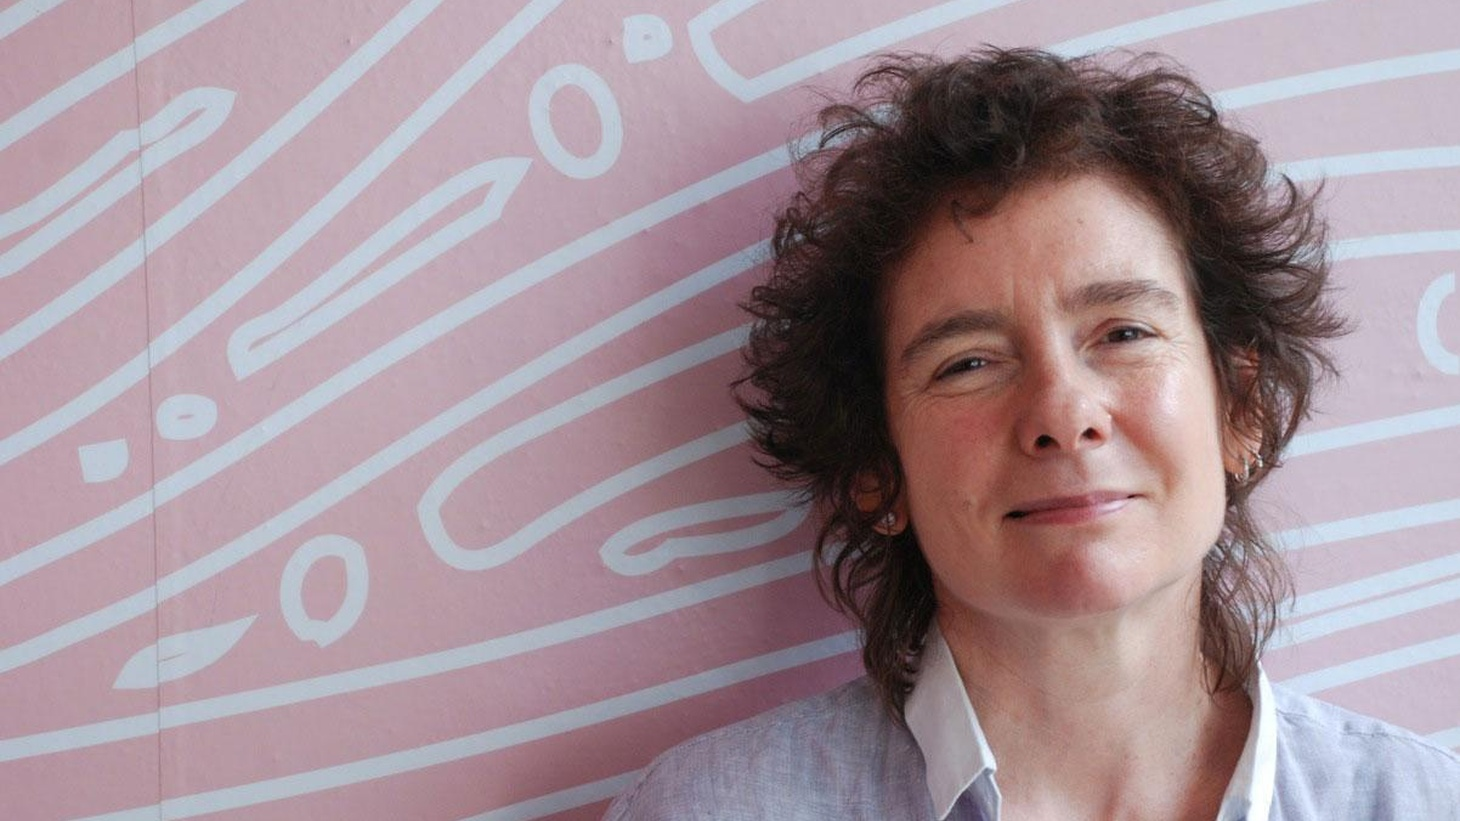 Jeanette Winterson on her new memoir that details how she survived being adopted by a dominating and wildly eccentric Pentecostal mother.